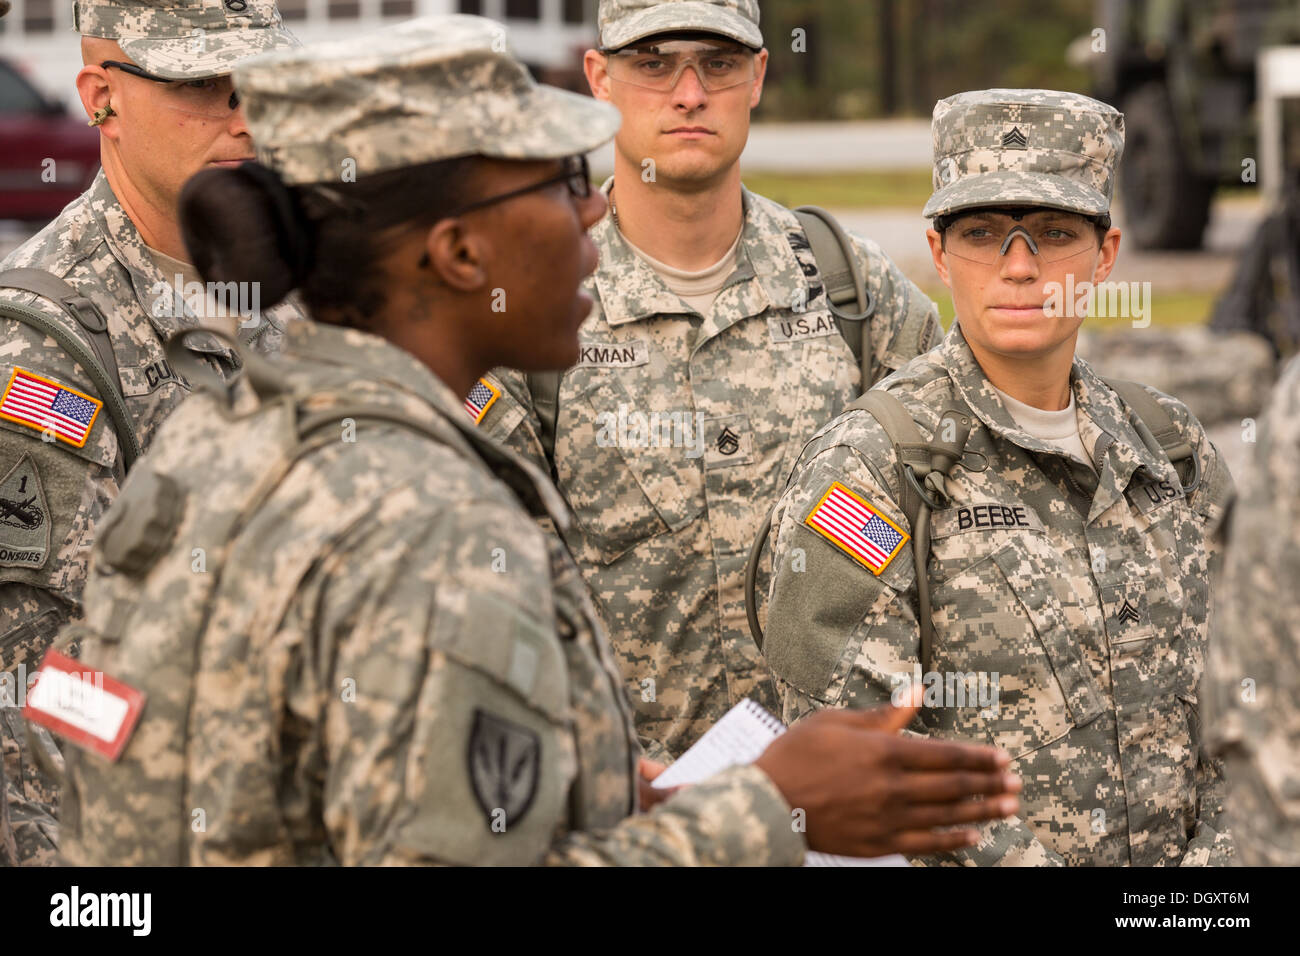 female drill sergeant essay This shows to be a brutal and depressing experience inflicted by the sadistic drill sergeant, gunnery sergeant hartman (lee ermey), who was a real drill sergeant for the marine corps, drafted in by kubrick.